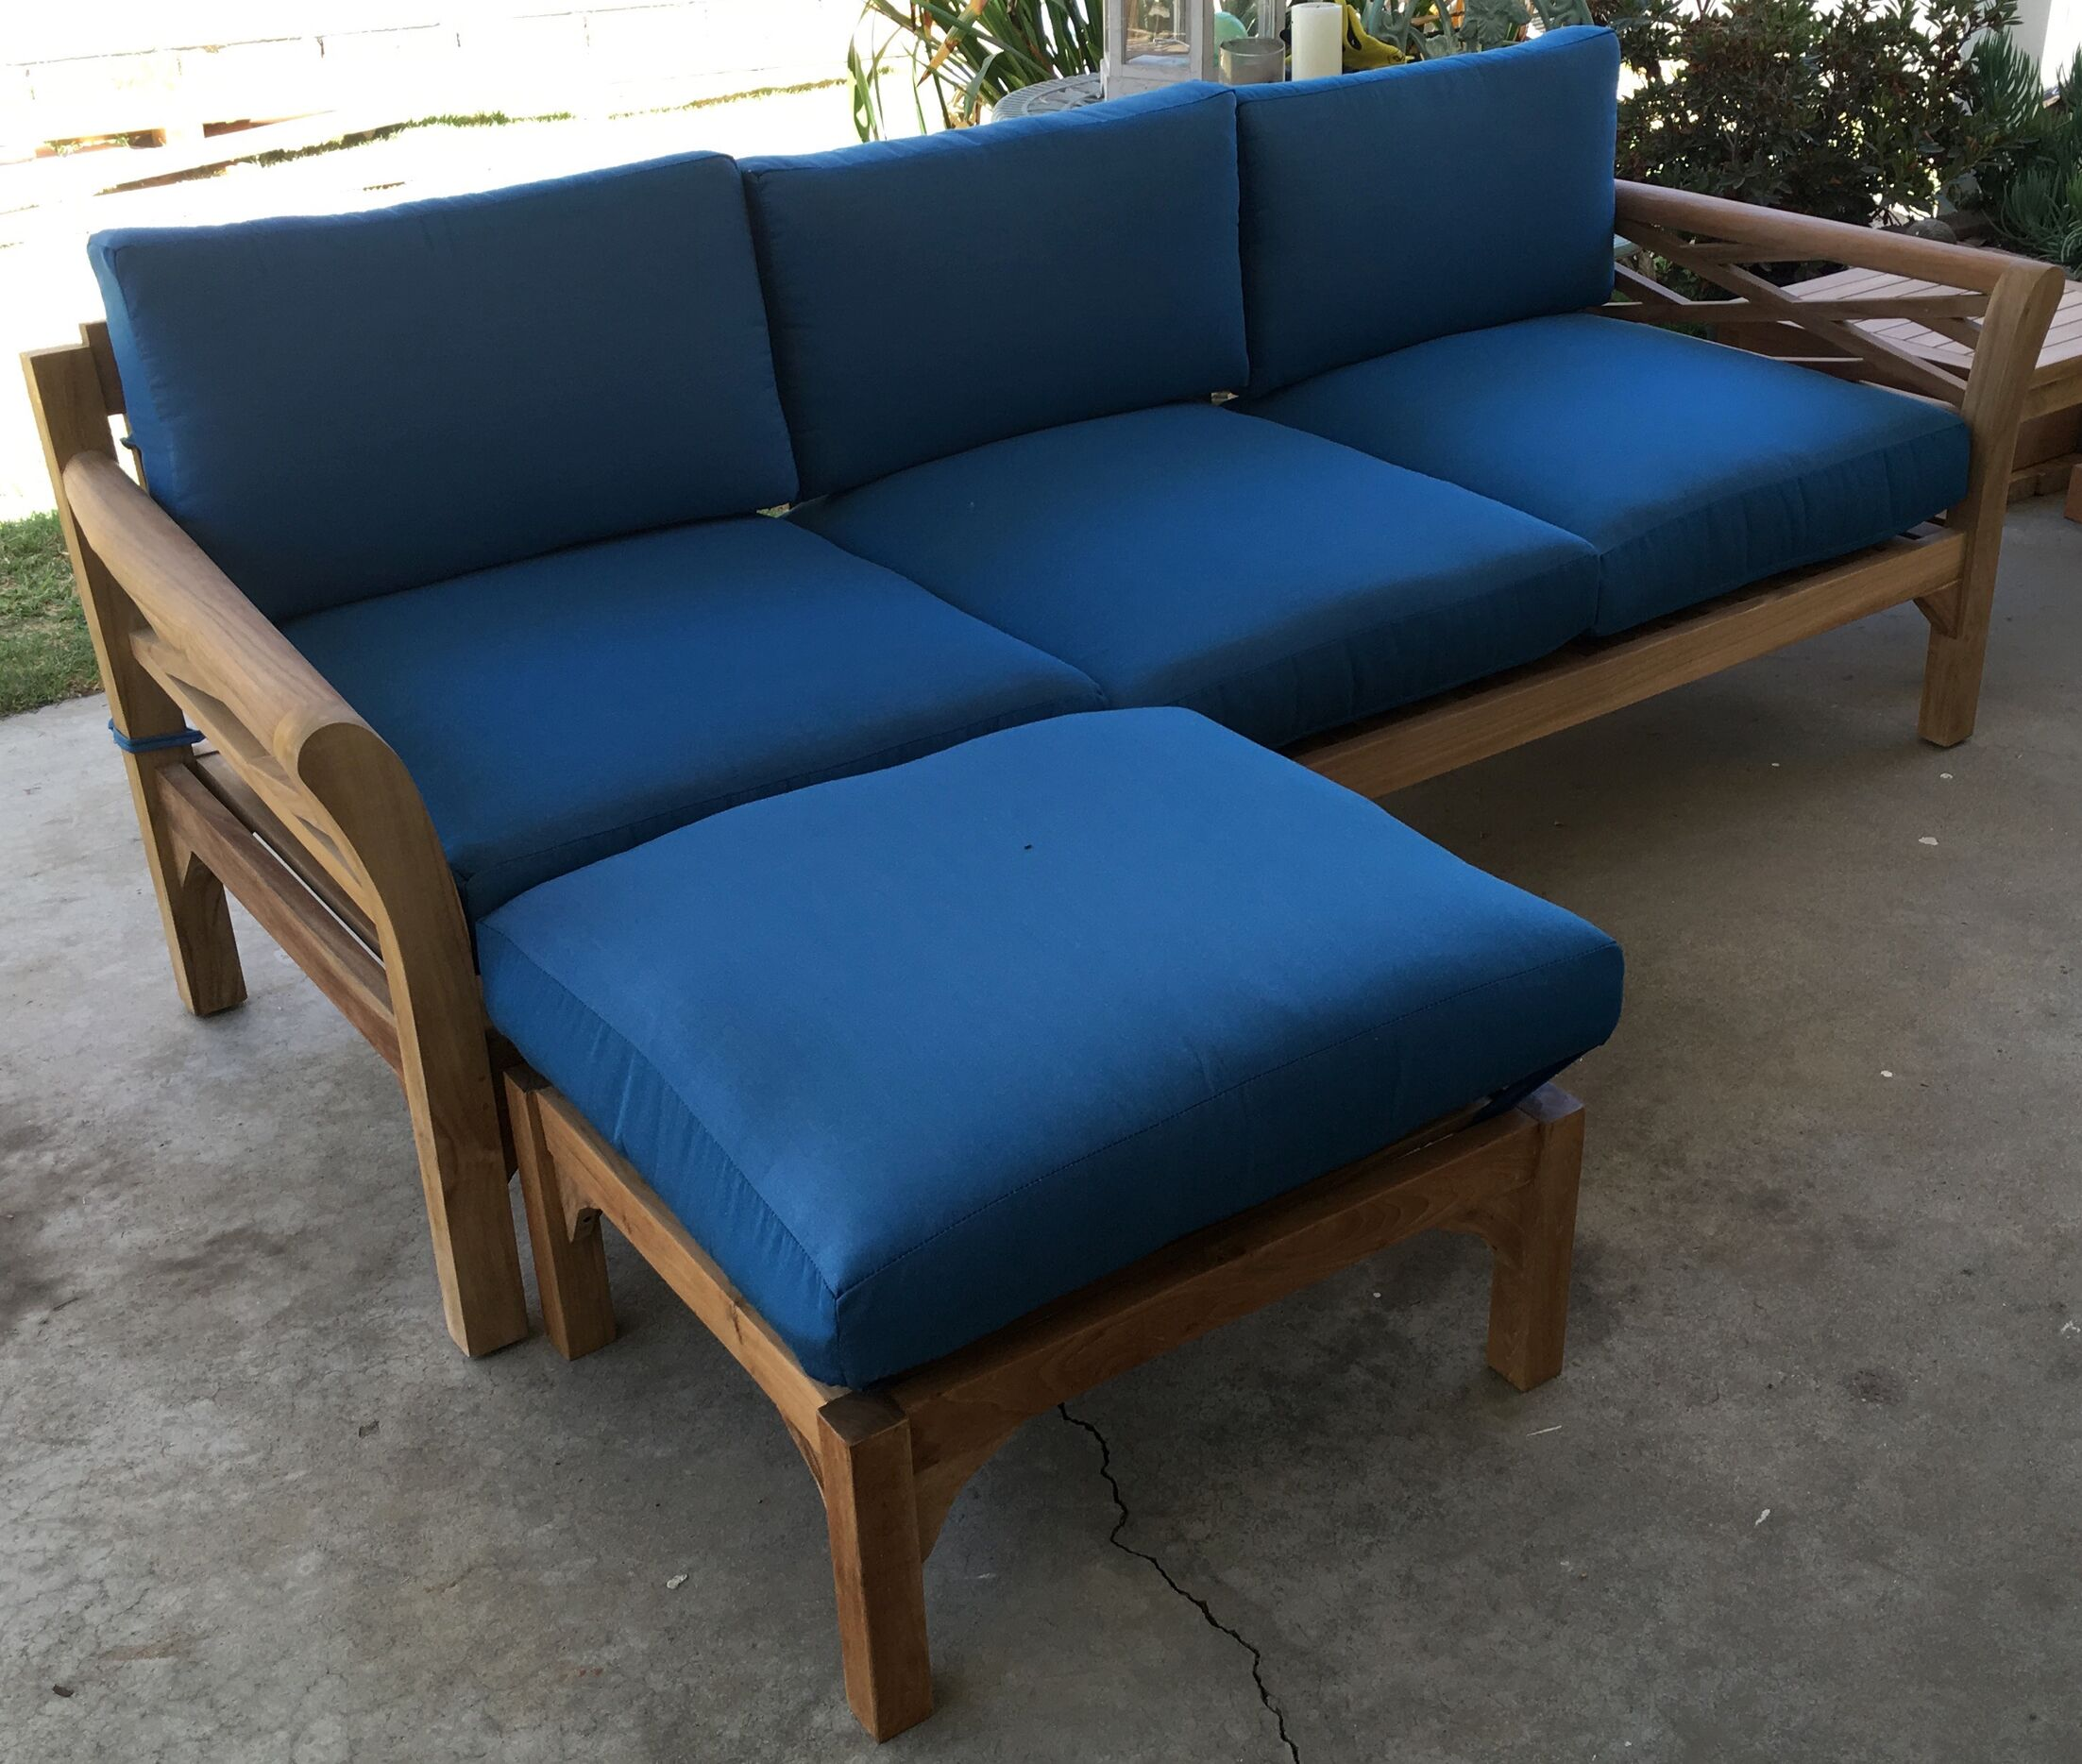 Malibu Teak Patio Sofa with Sunbrella Cushions Fabric: Flax